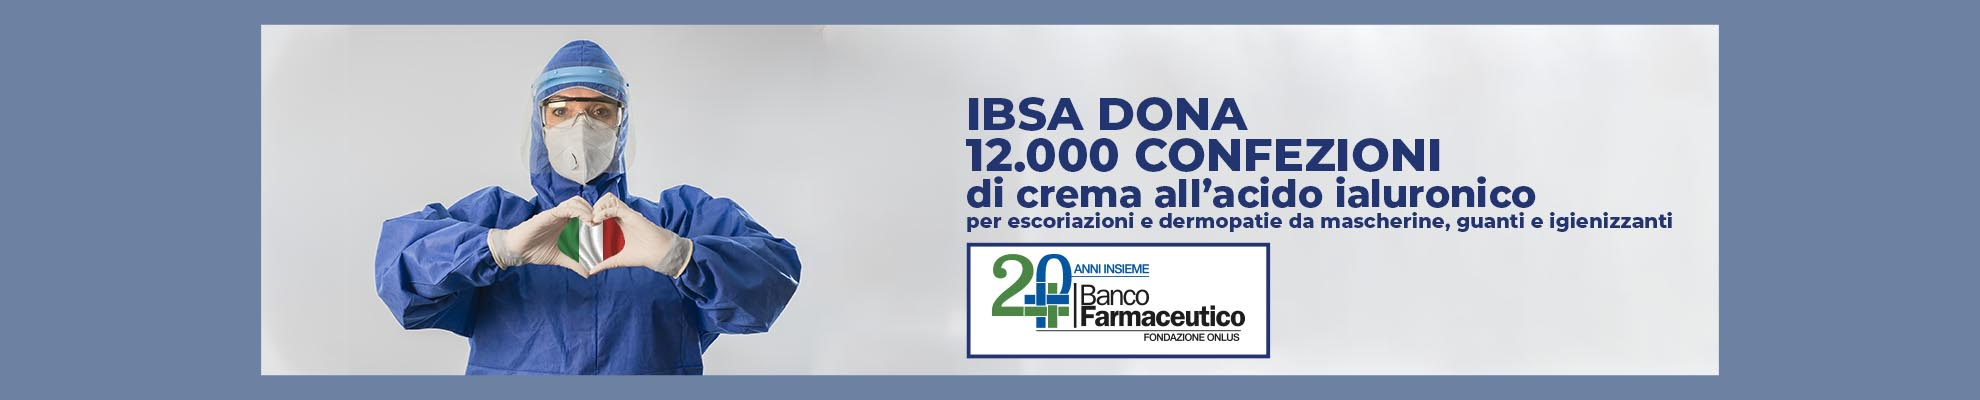 IBSA donates 12,000 packs of hyaluronic acid cream to Banco Farmaceutico